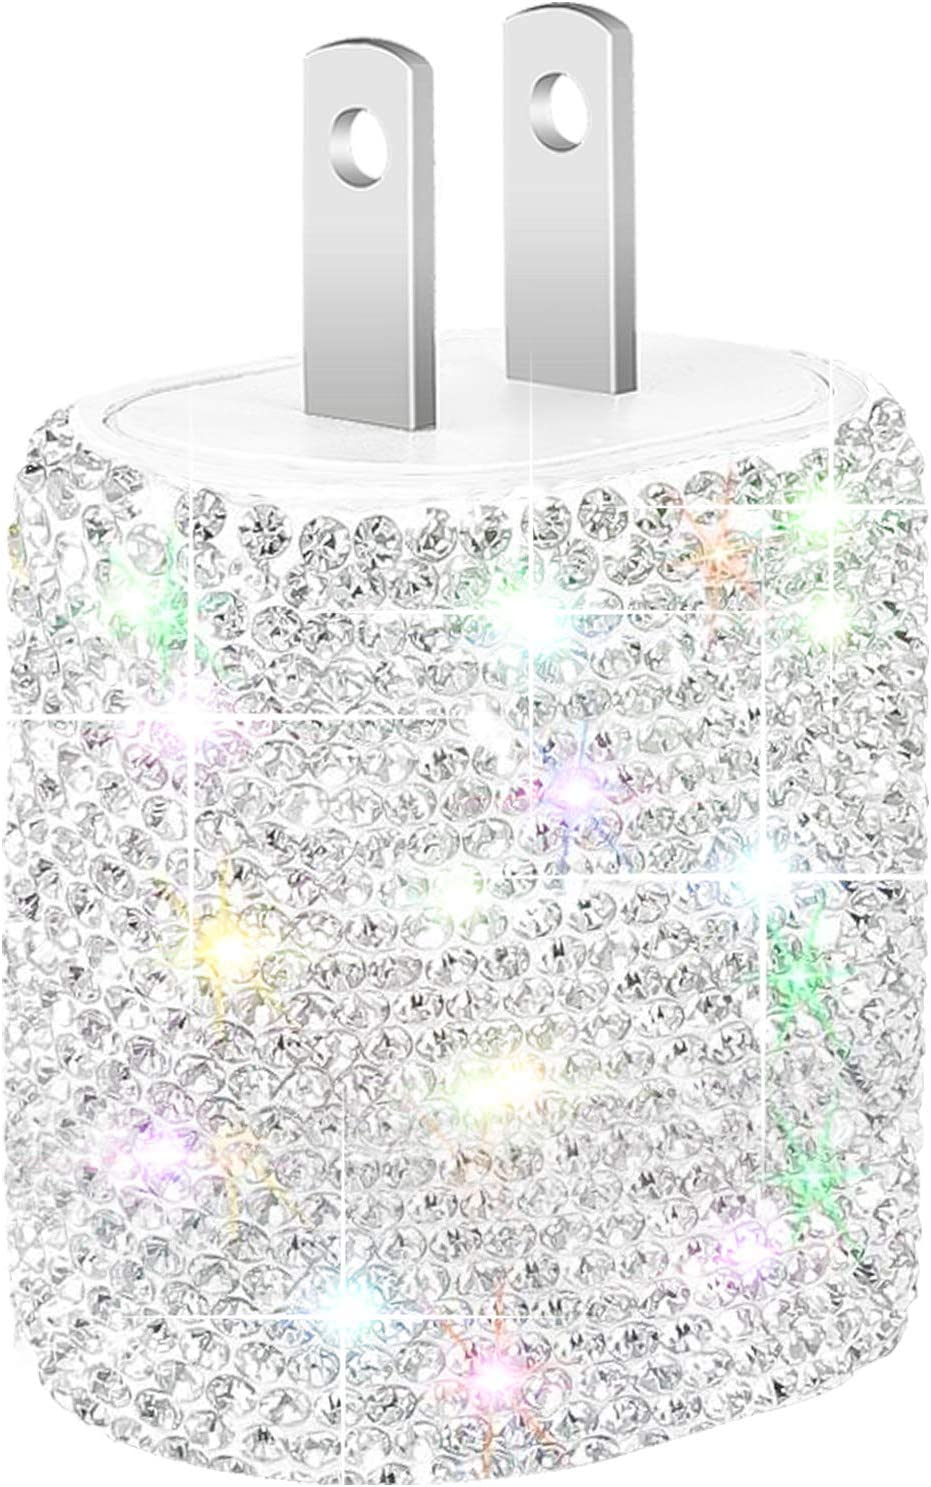 Bling USB Wall Charger 5V 2.4A New product Port Quick Virginia Beach Mall Fast Plug Dual